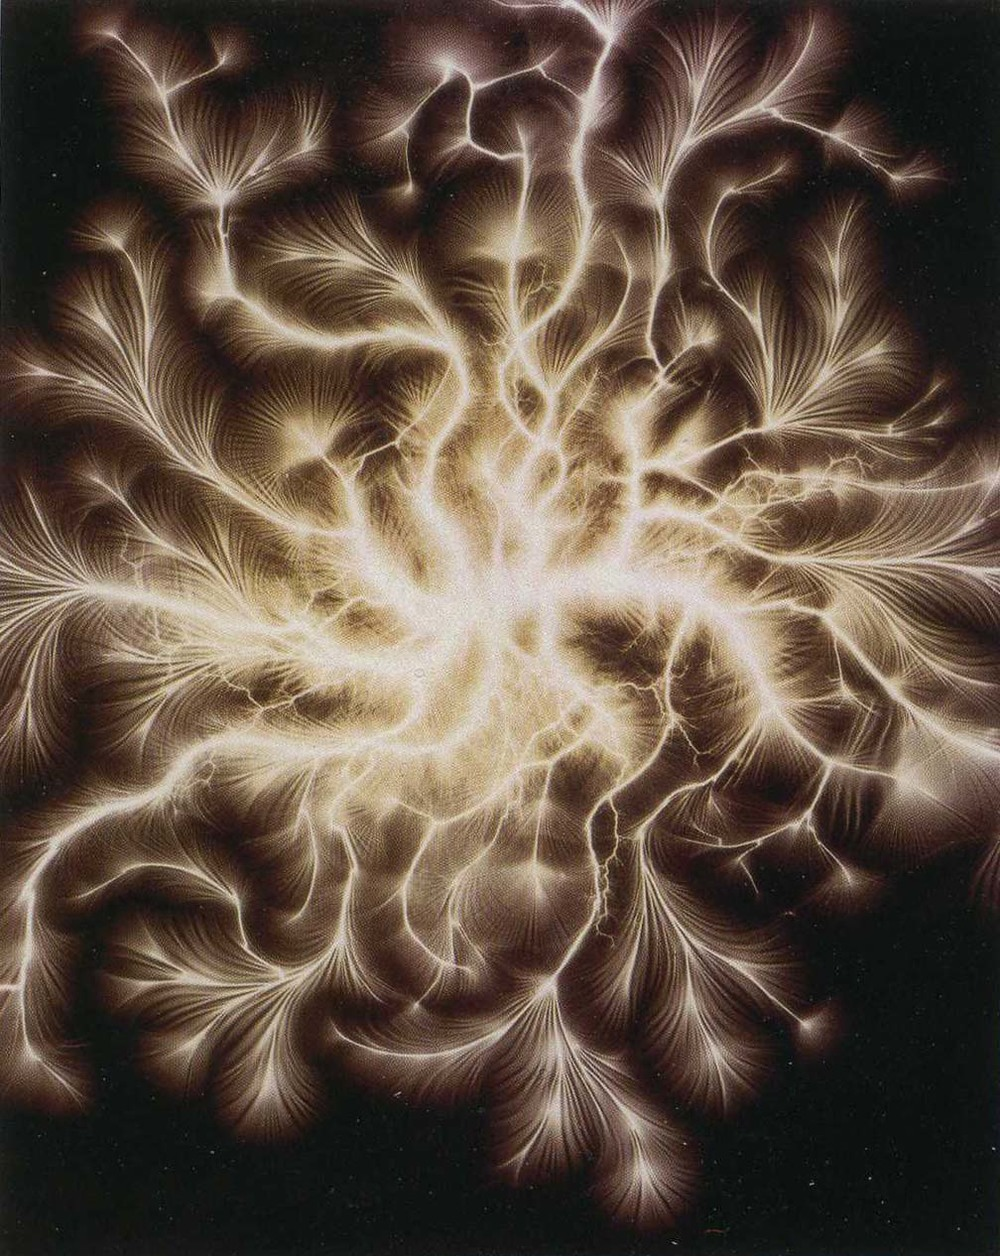 "design-is-fine: Etienne Leopold Trouvelot. Direct electric spark obtained with a Ruhmkorff coil or Wimshurst machine, also known as a ""Trouvelot Figure."", 1888. © Musée des arts et métiers, Paris Trouvelot generated his images without a camera, directly exposing photosensitive plates to brief bursts of electrical energy. The resulting snapshots reveal patterns that resemble tree branches, rivers, vascular systems, coral, neurons, city maps, mountain ranges, microchips, mycorrhizal networks, galaxies, flow charts, family trees and feathers—basically everything in the universe whose structure is determined by growth, movement or the transfer of energy. Source Emily Pothast"